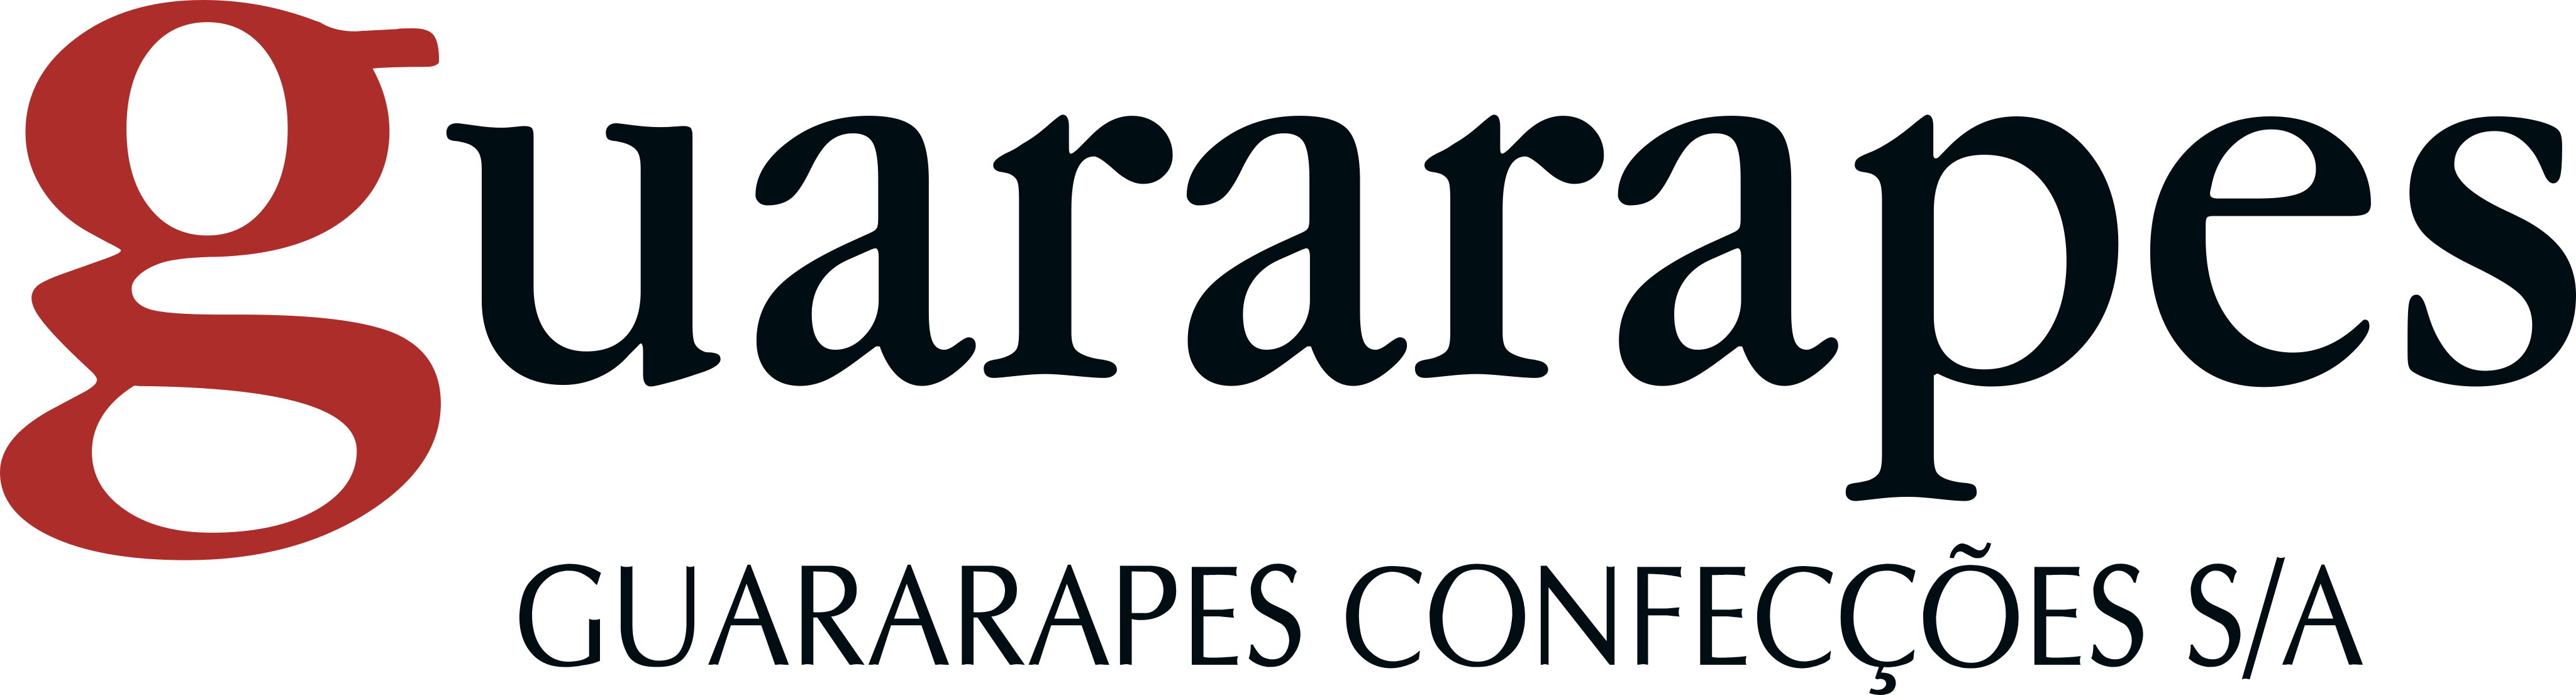 grupo guararapes logo - Grupo Guararapes Confecções Logo